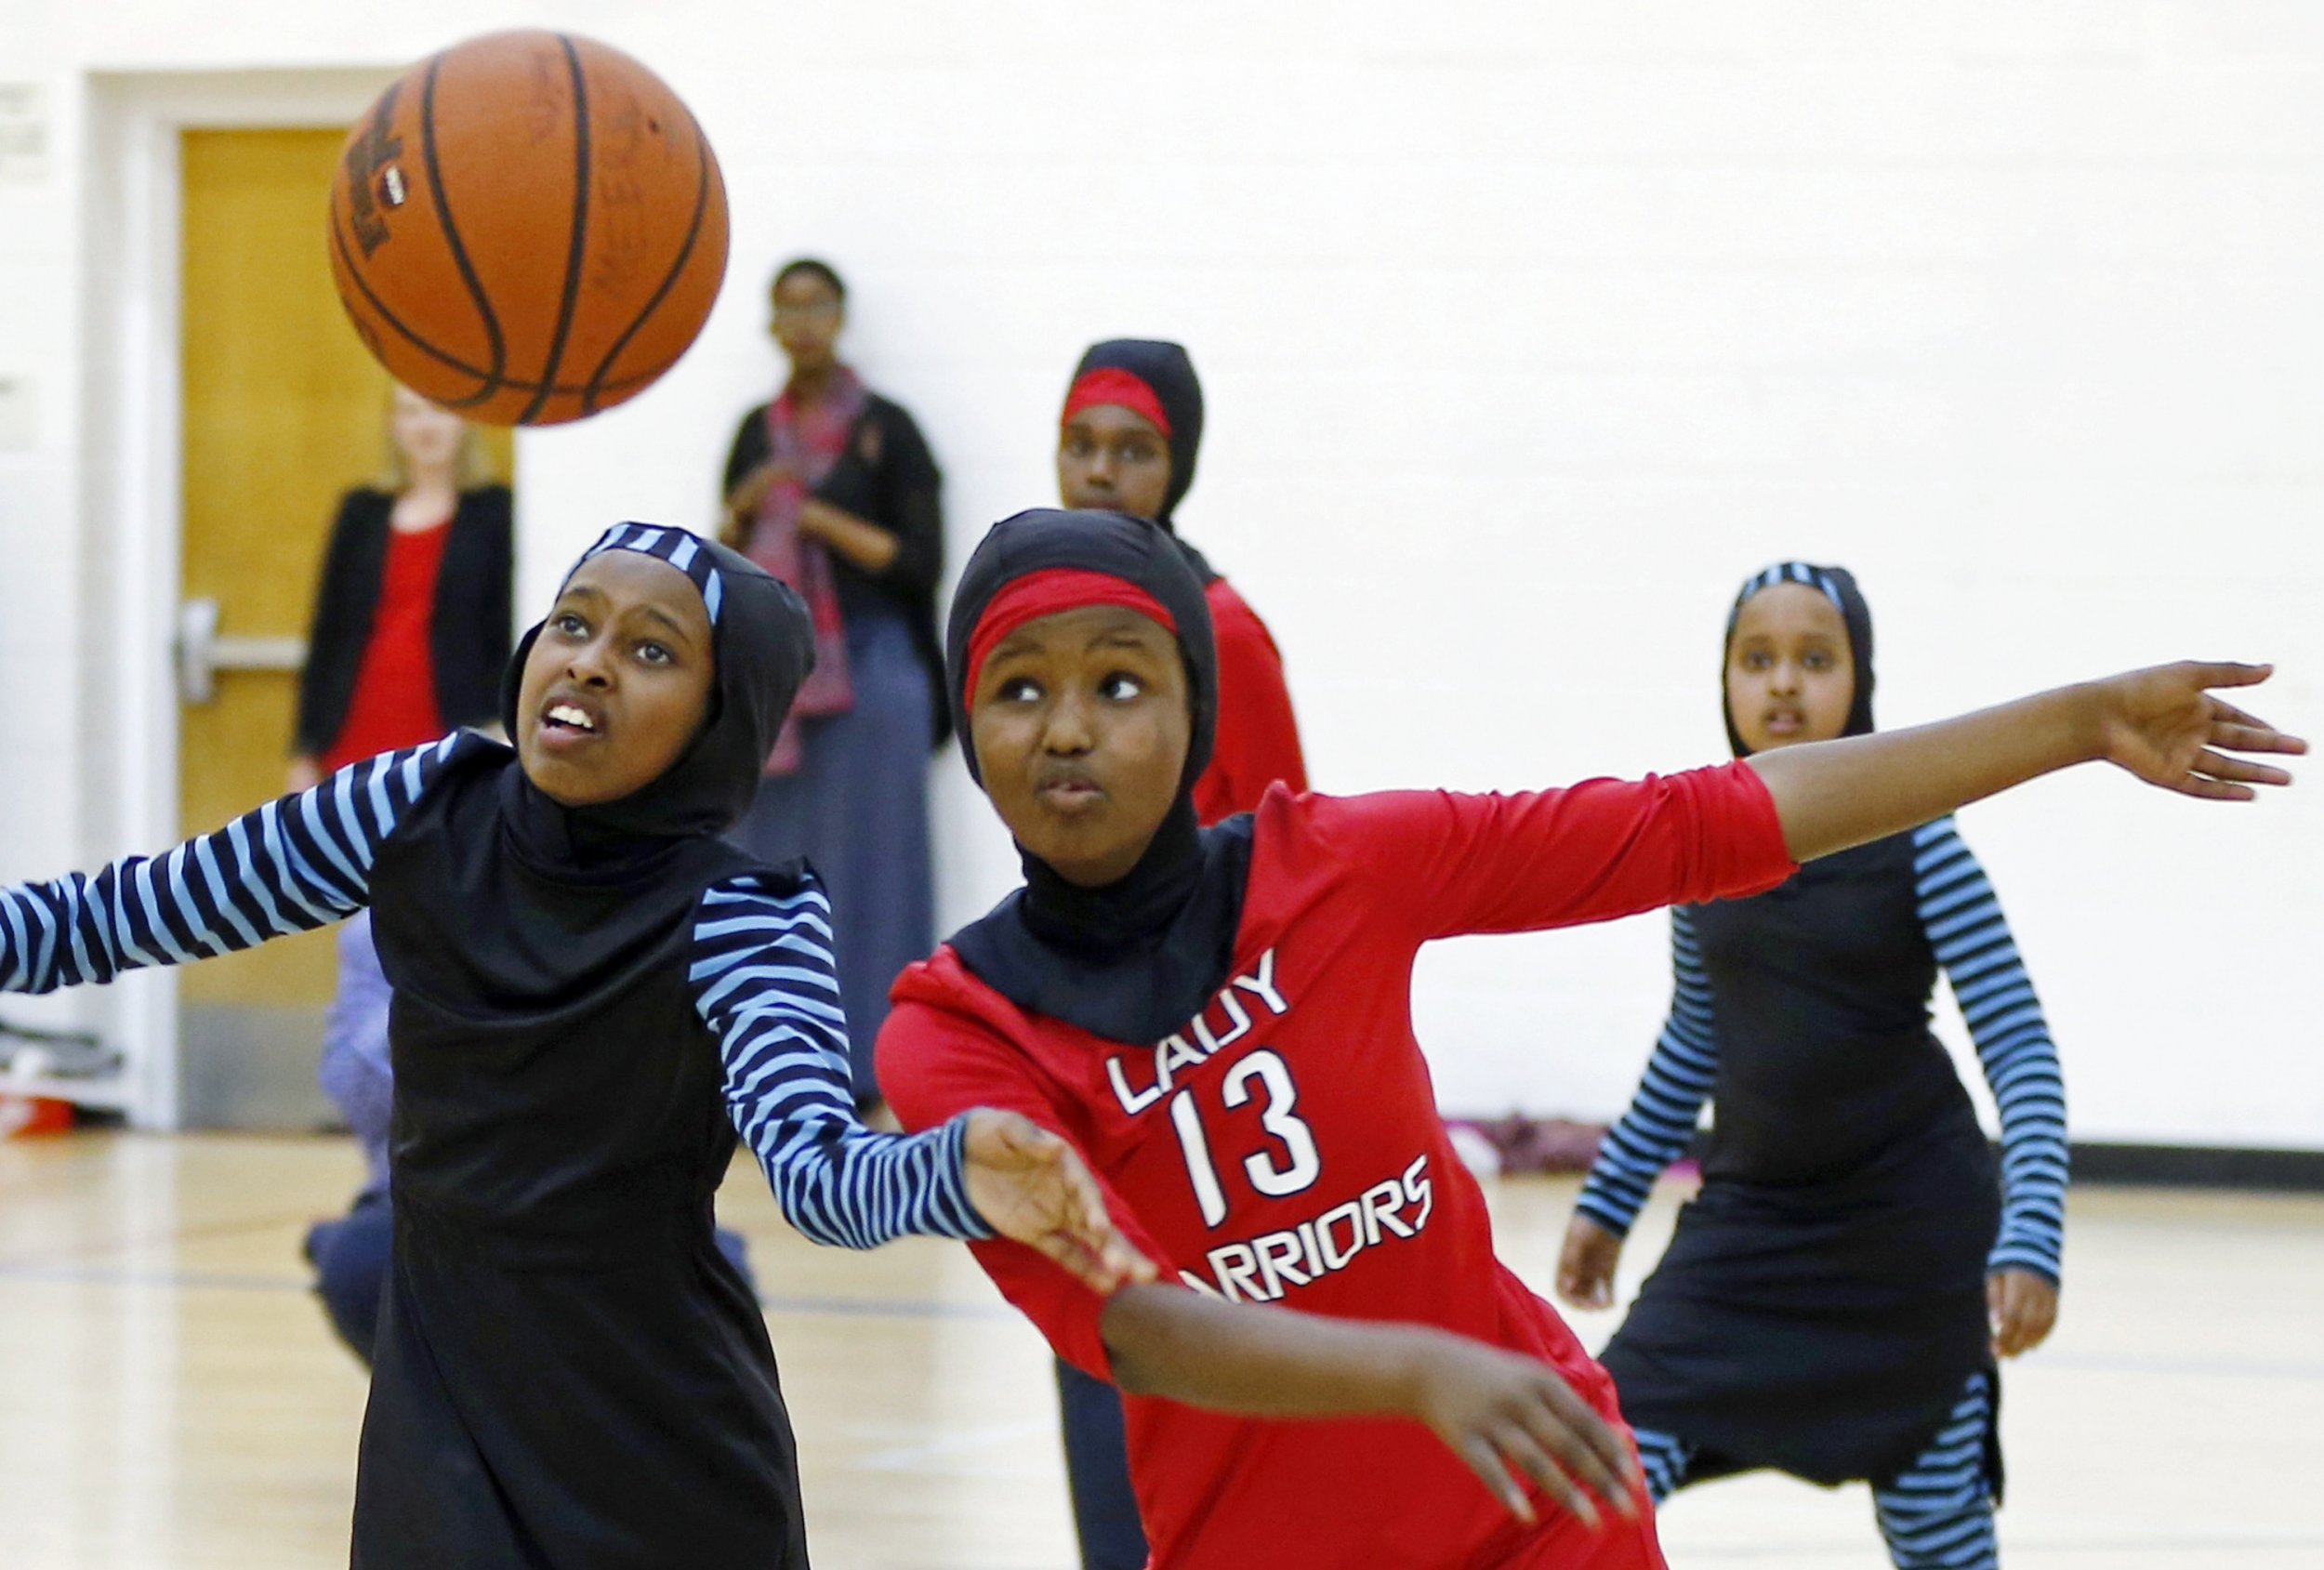 Quot Basketball Uniforms Designed For Girls With Hijabs